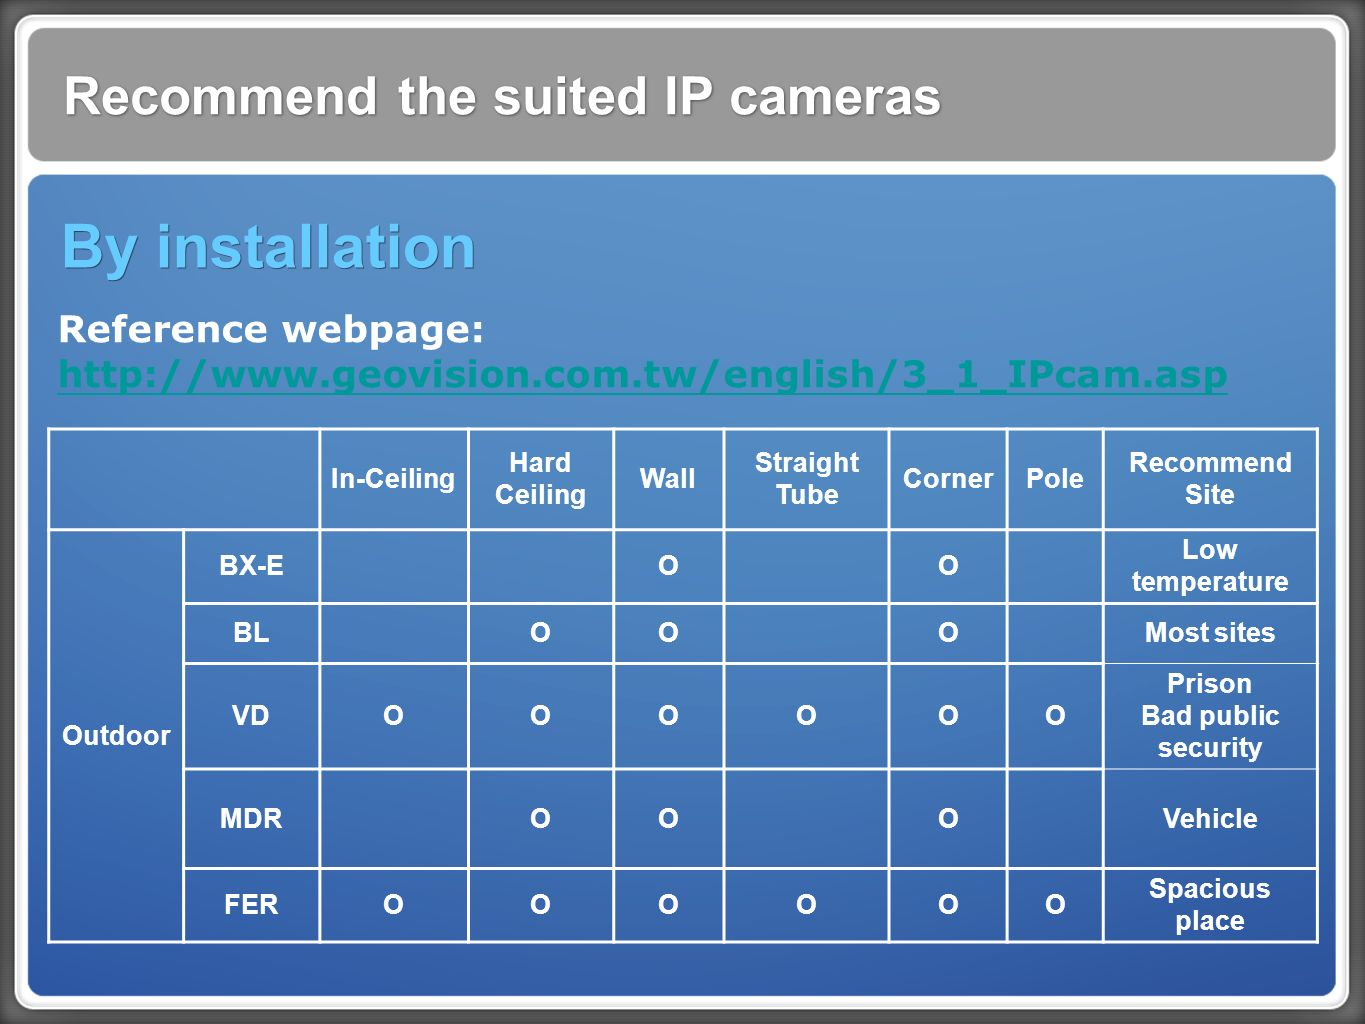 Recommend the suited IP cameras By installation In-Ceiling Hard Ceiling Wall Straight Tube CornerPole Recommend Site Outdoor BX-E O O Low temperature BLOOOMost sites VDOOO O O O Prison Bad public security MDR OO O Vehicle FEROOOOOO Spacious place Reference webpage: